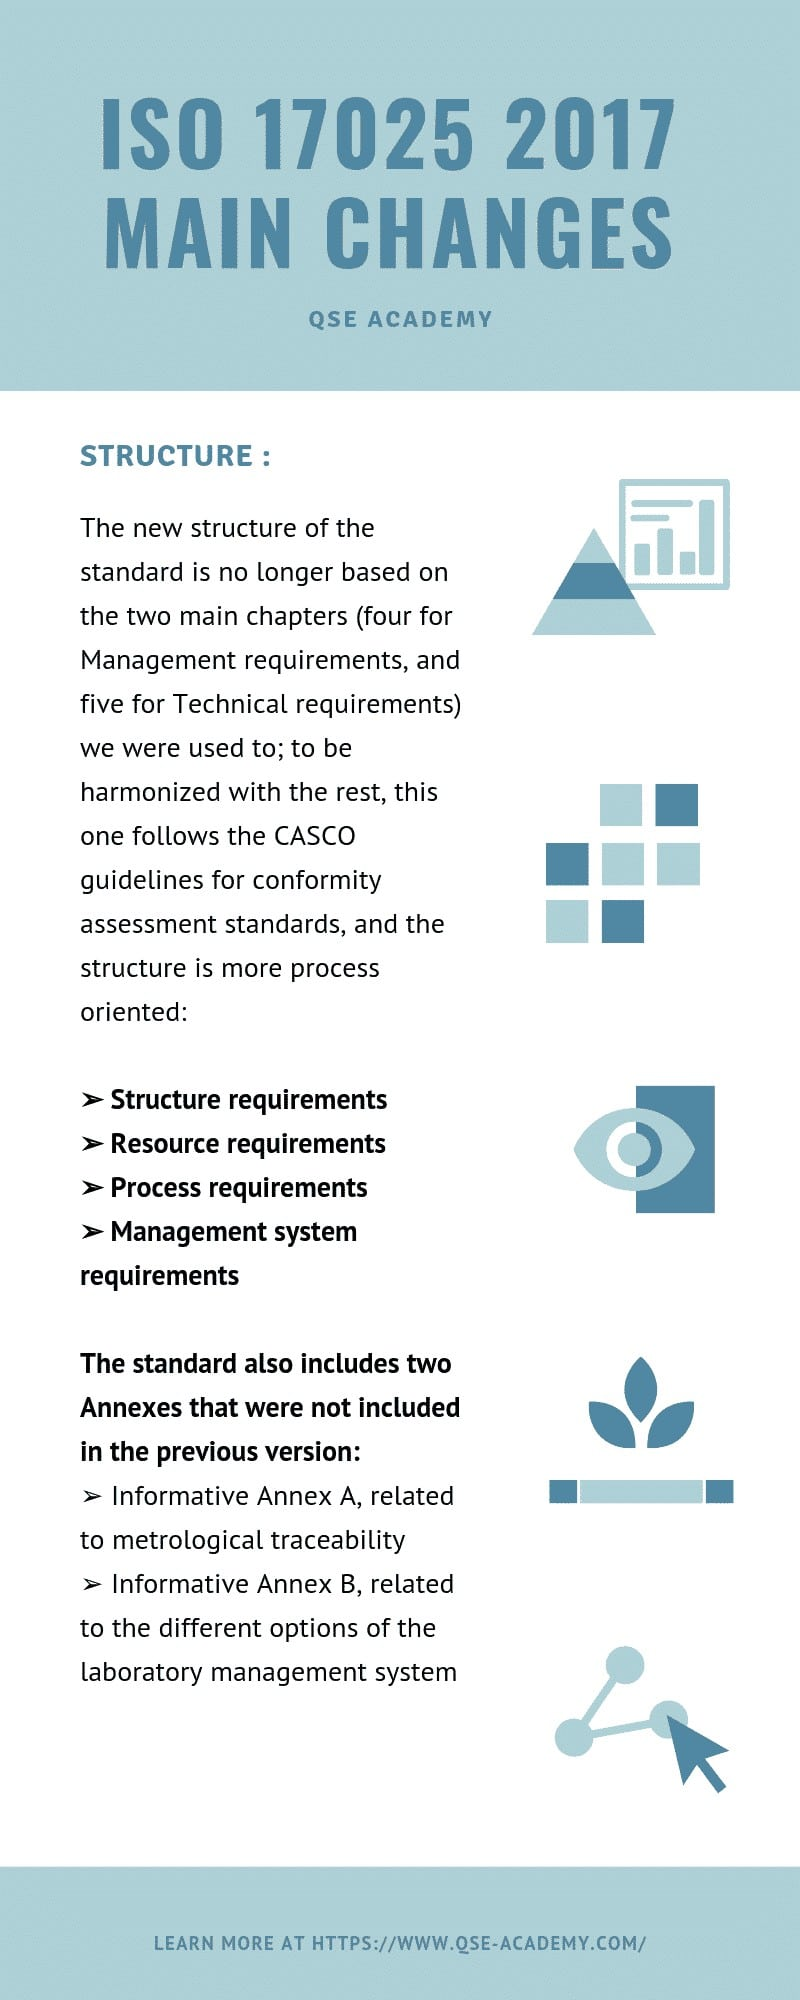 ISO 17025 changes in structure